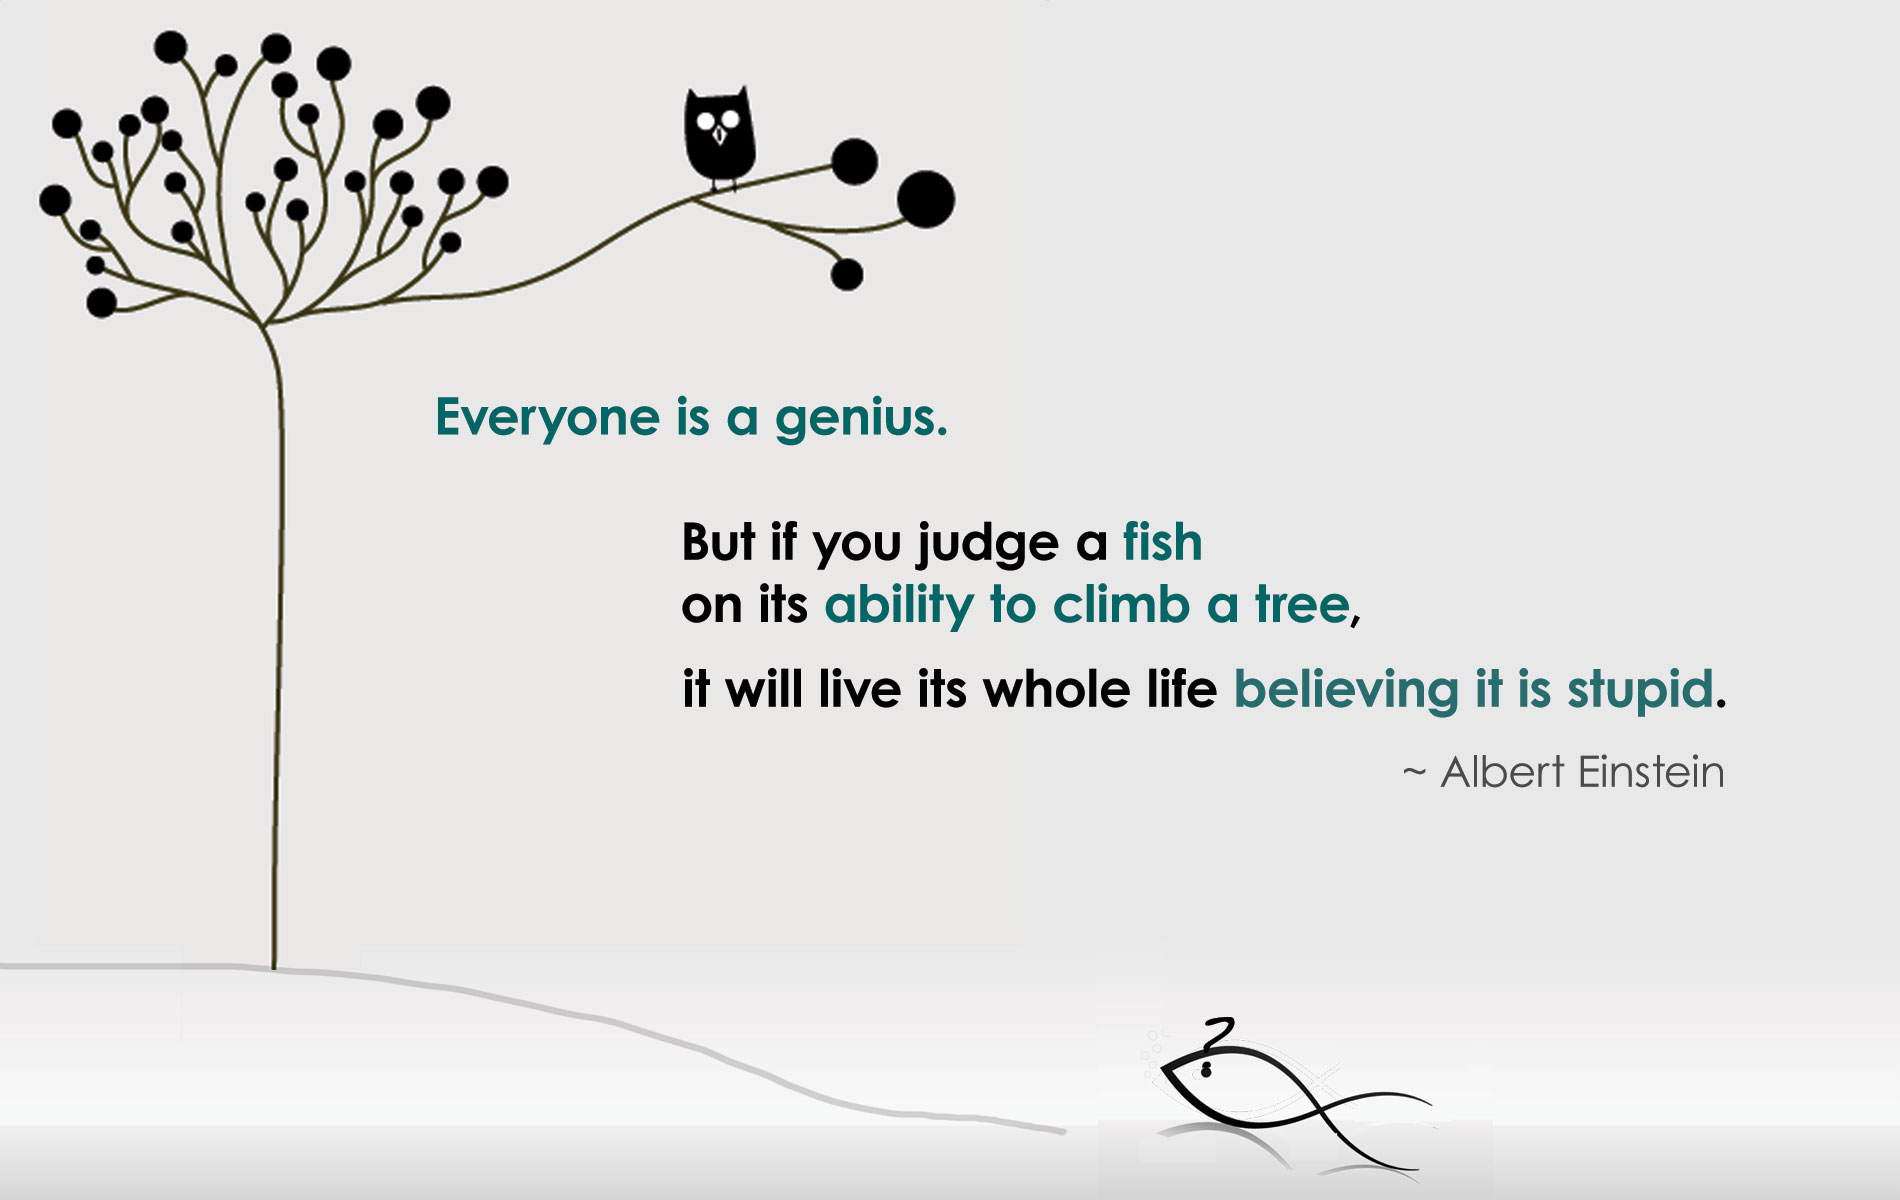 everyone-is-a-genius-but-if-you-judge-a-fish-lg.jpg